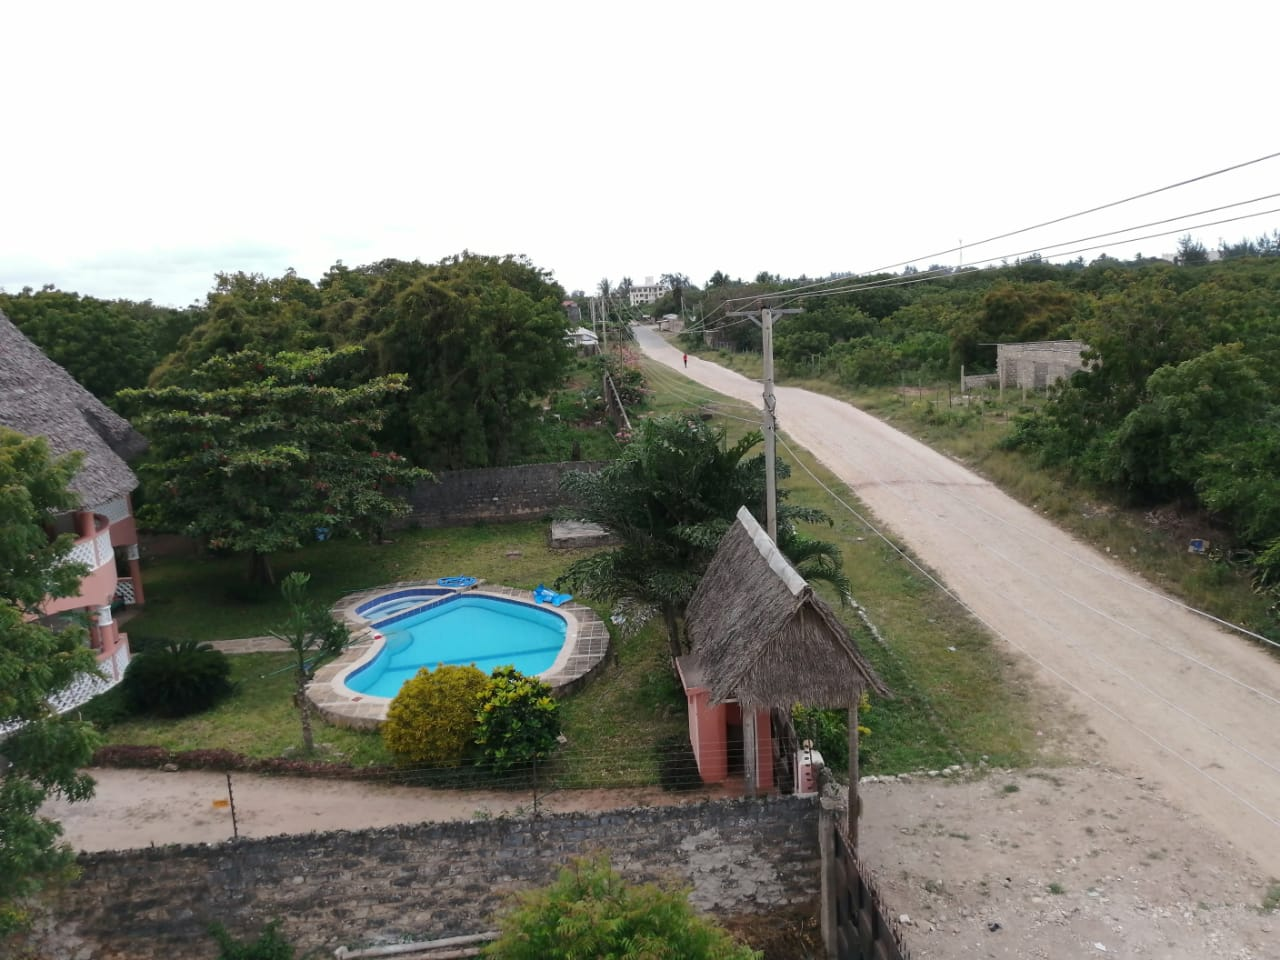 House to let in Diani with SQ